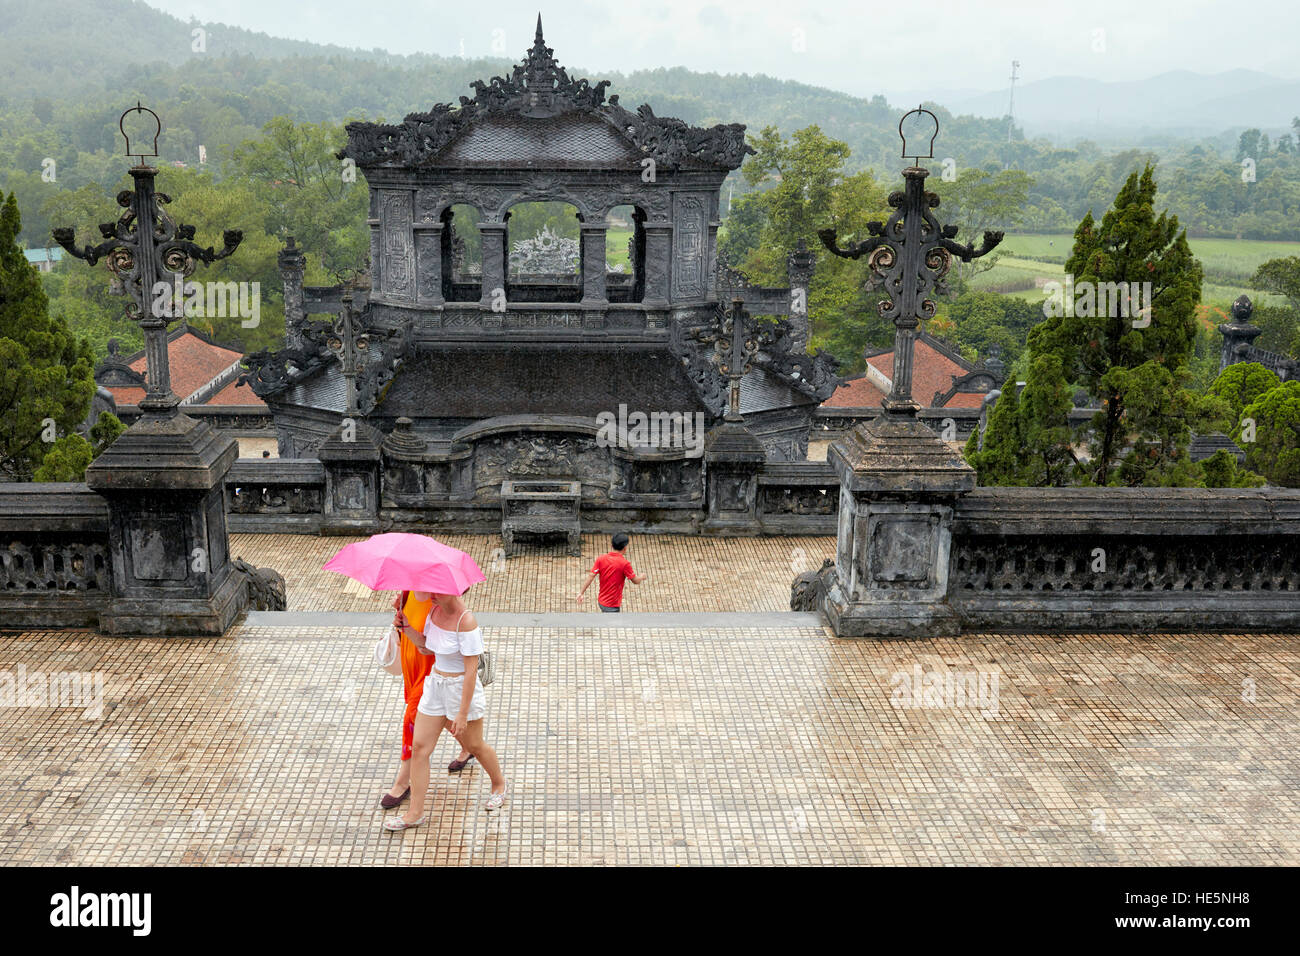 Tourists at the Tomb of Khai Dinh (Ung Tomb). Hue, Vietnam. - Stock Image